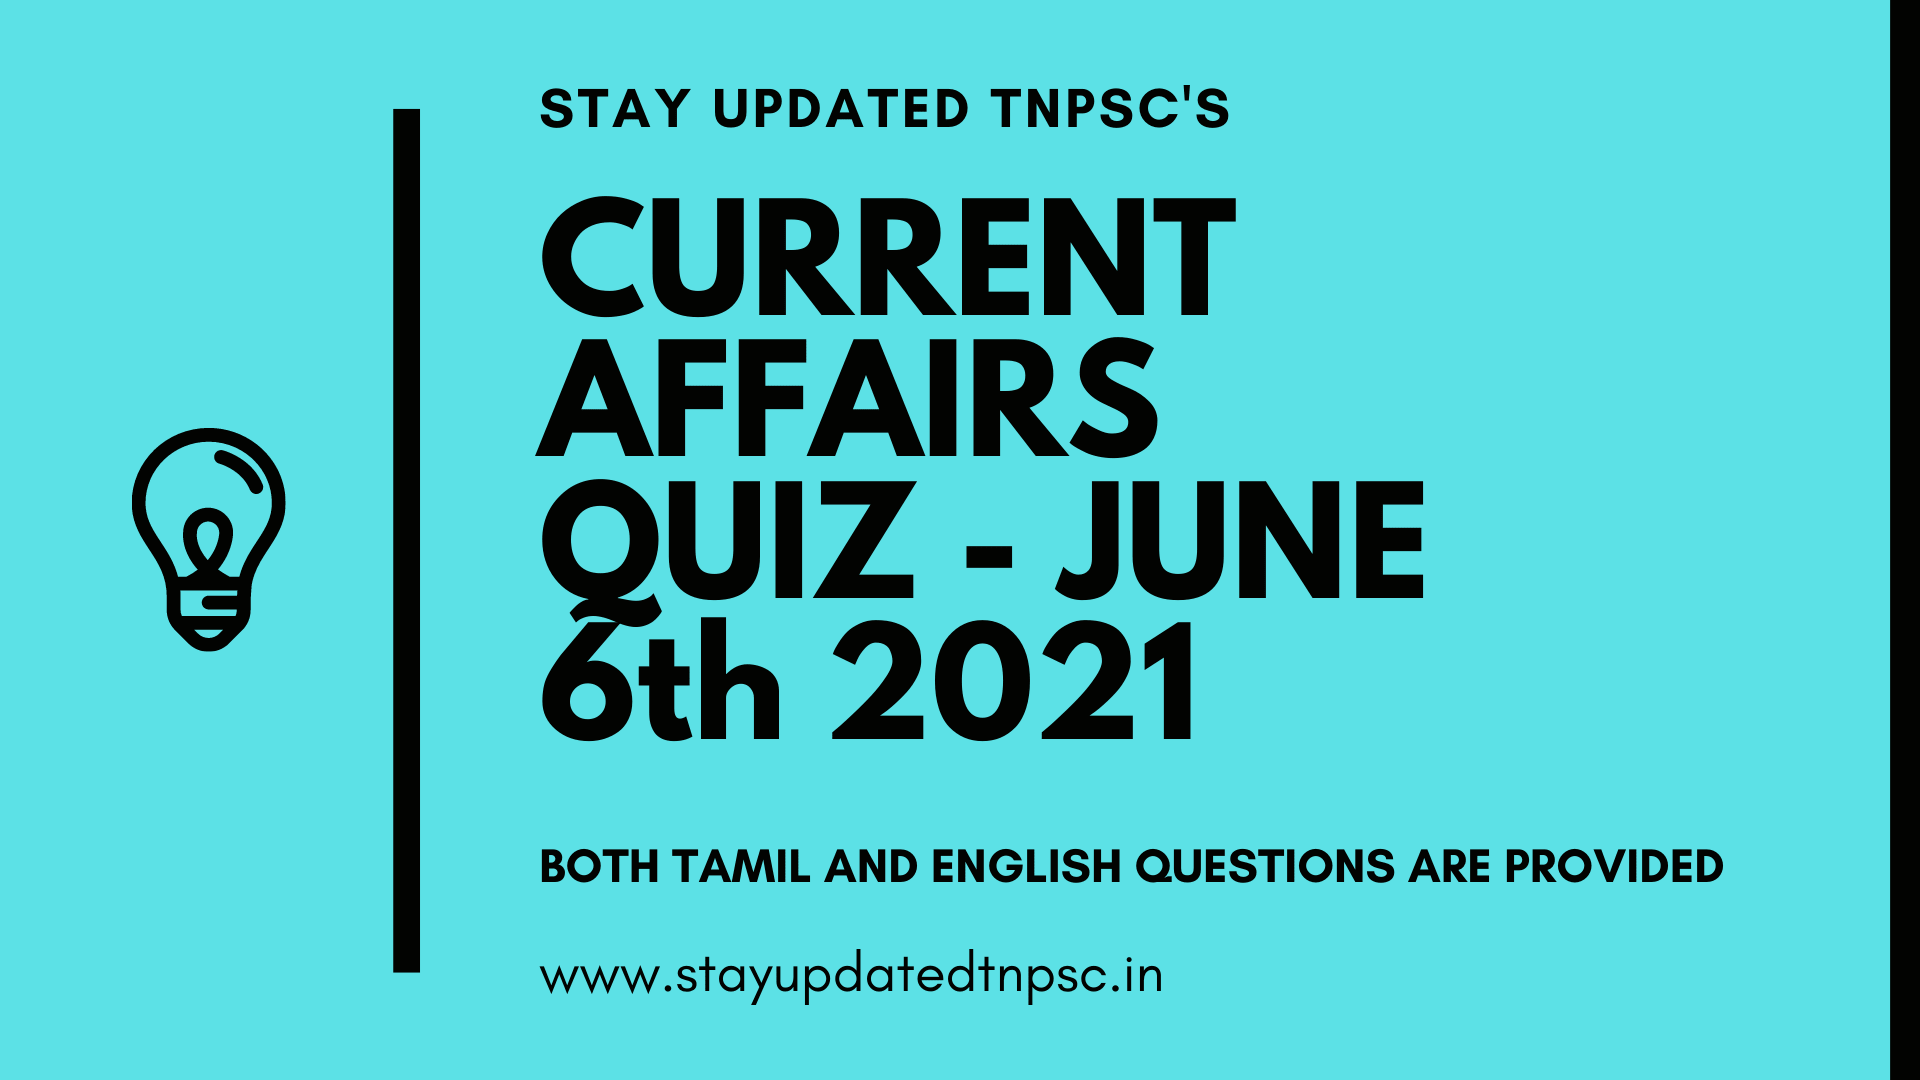 TNPSC DAILY CURRENT AFFAIRS: 06 JUNE 2021